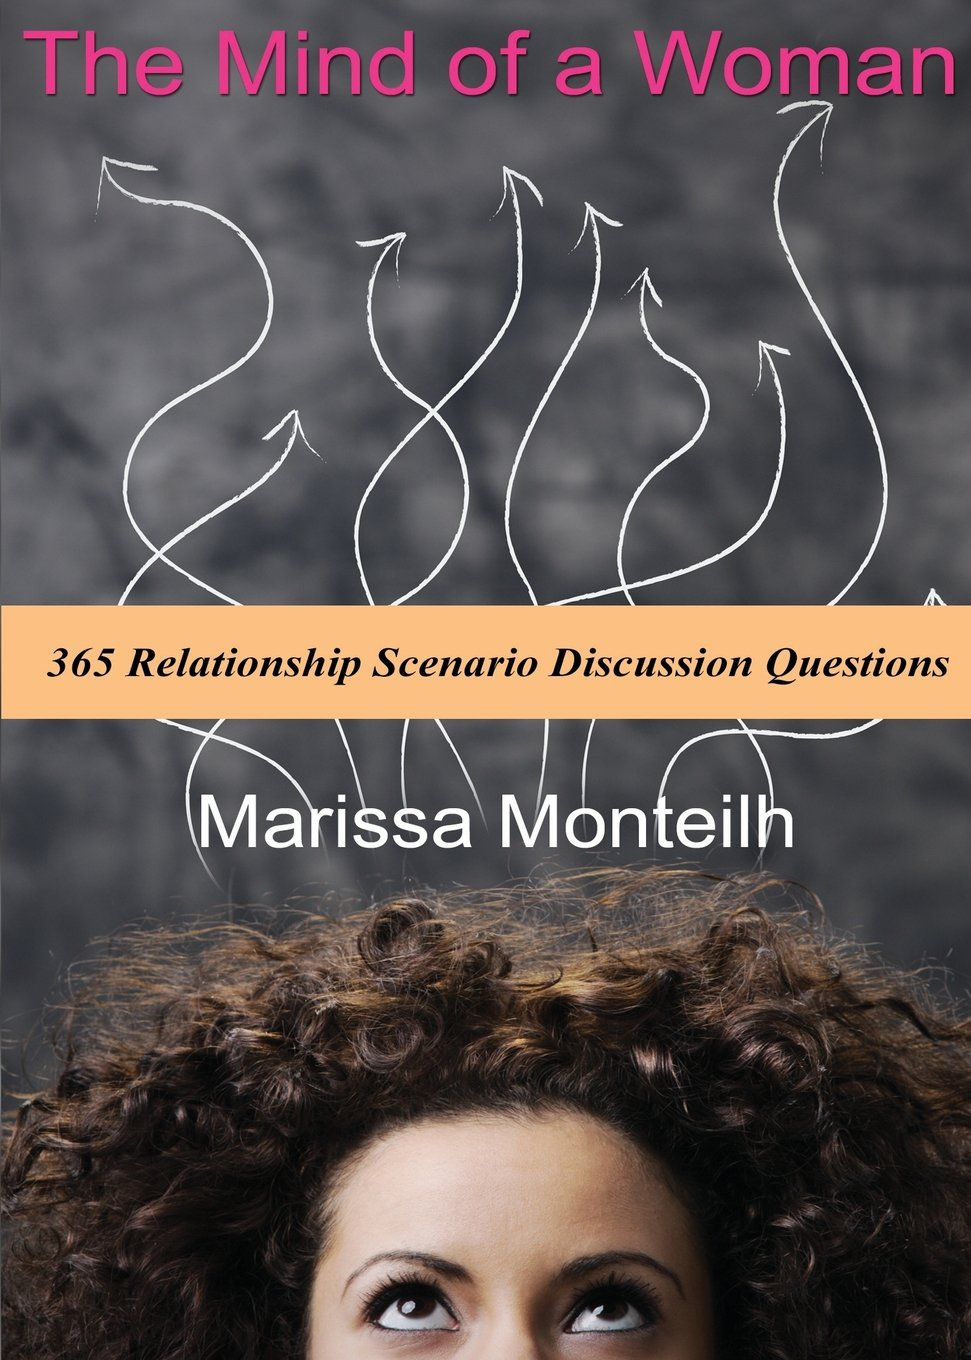 the mind of a w relationship scenario discussion the mind of a w 365 relationship scenario discussion questions marissa monteilh 9780970414137 com books